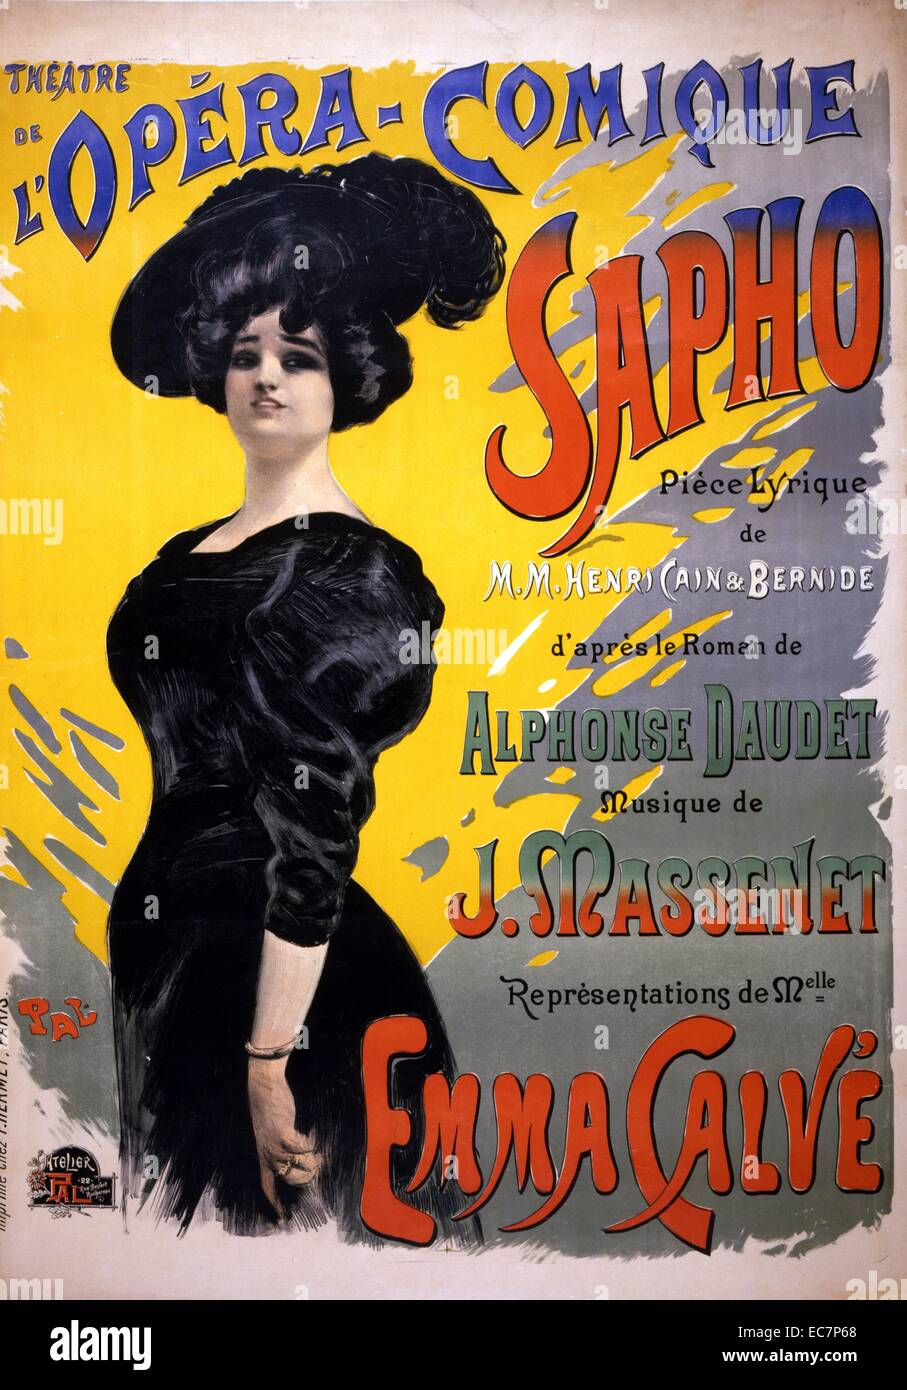 Sappho: Théâtre de l'Opéra-Comique. Performing arts poster for a performance of a comic opera - Stock Image